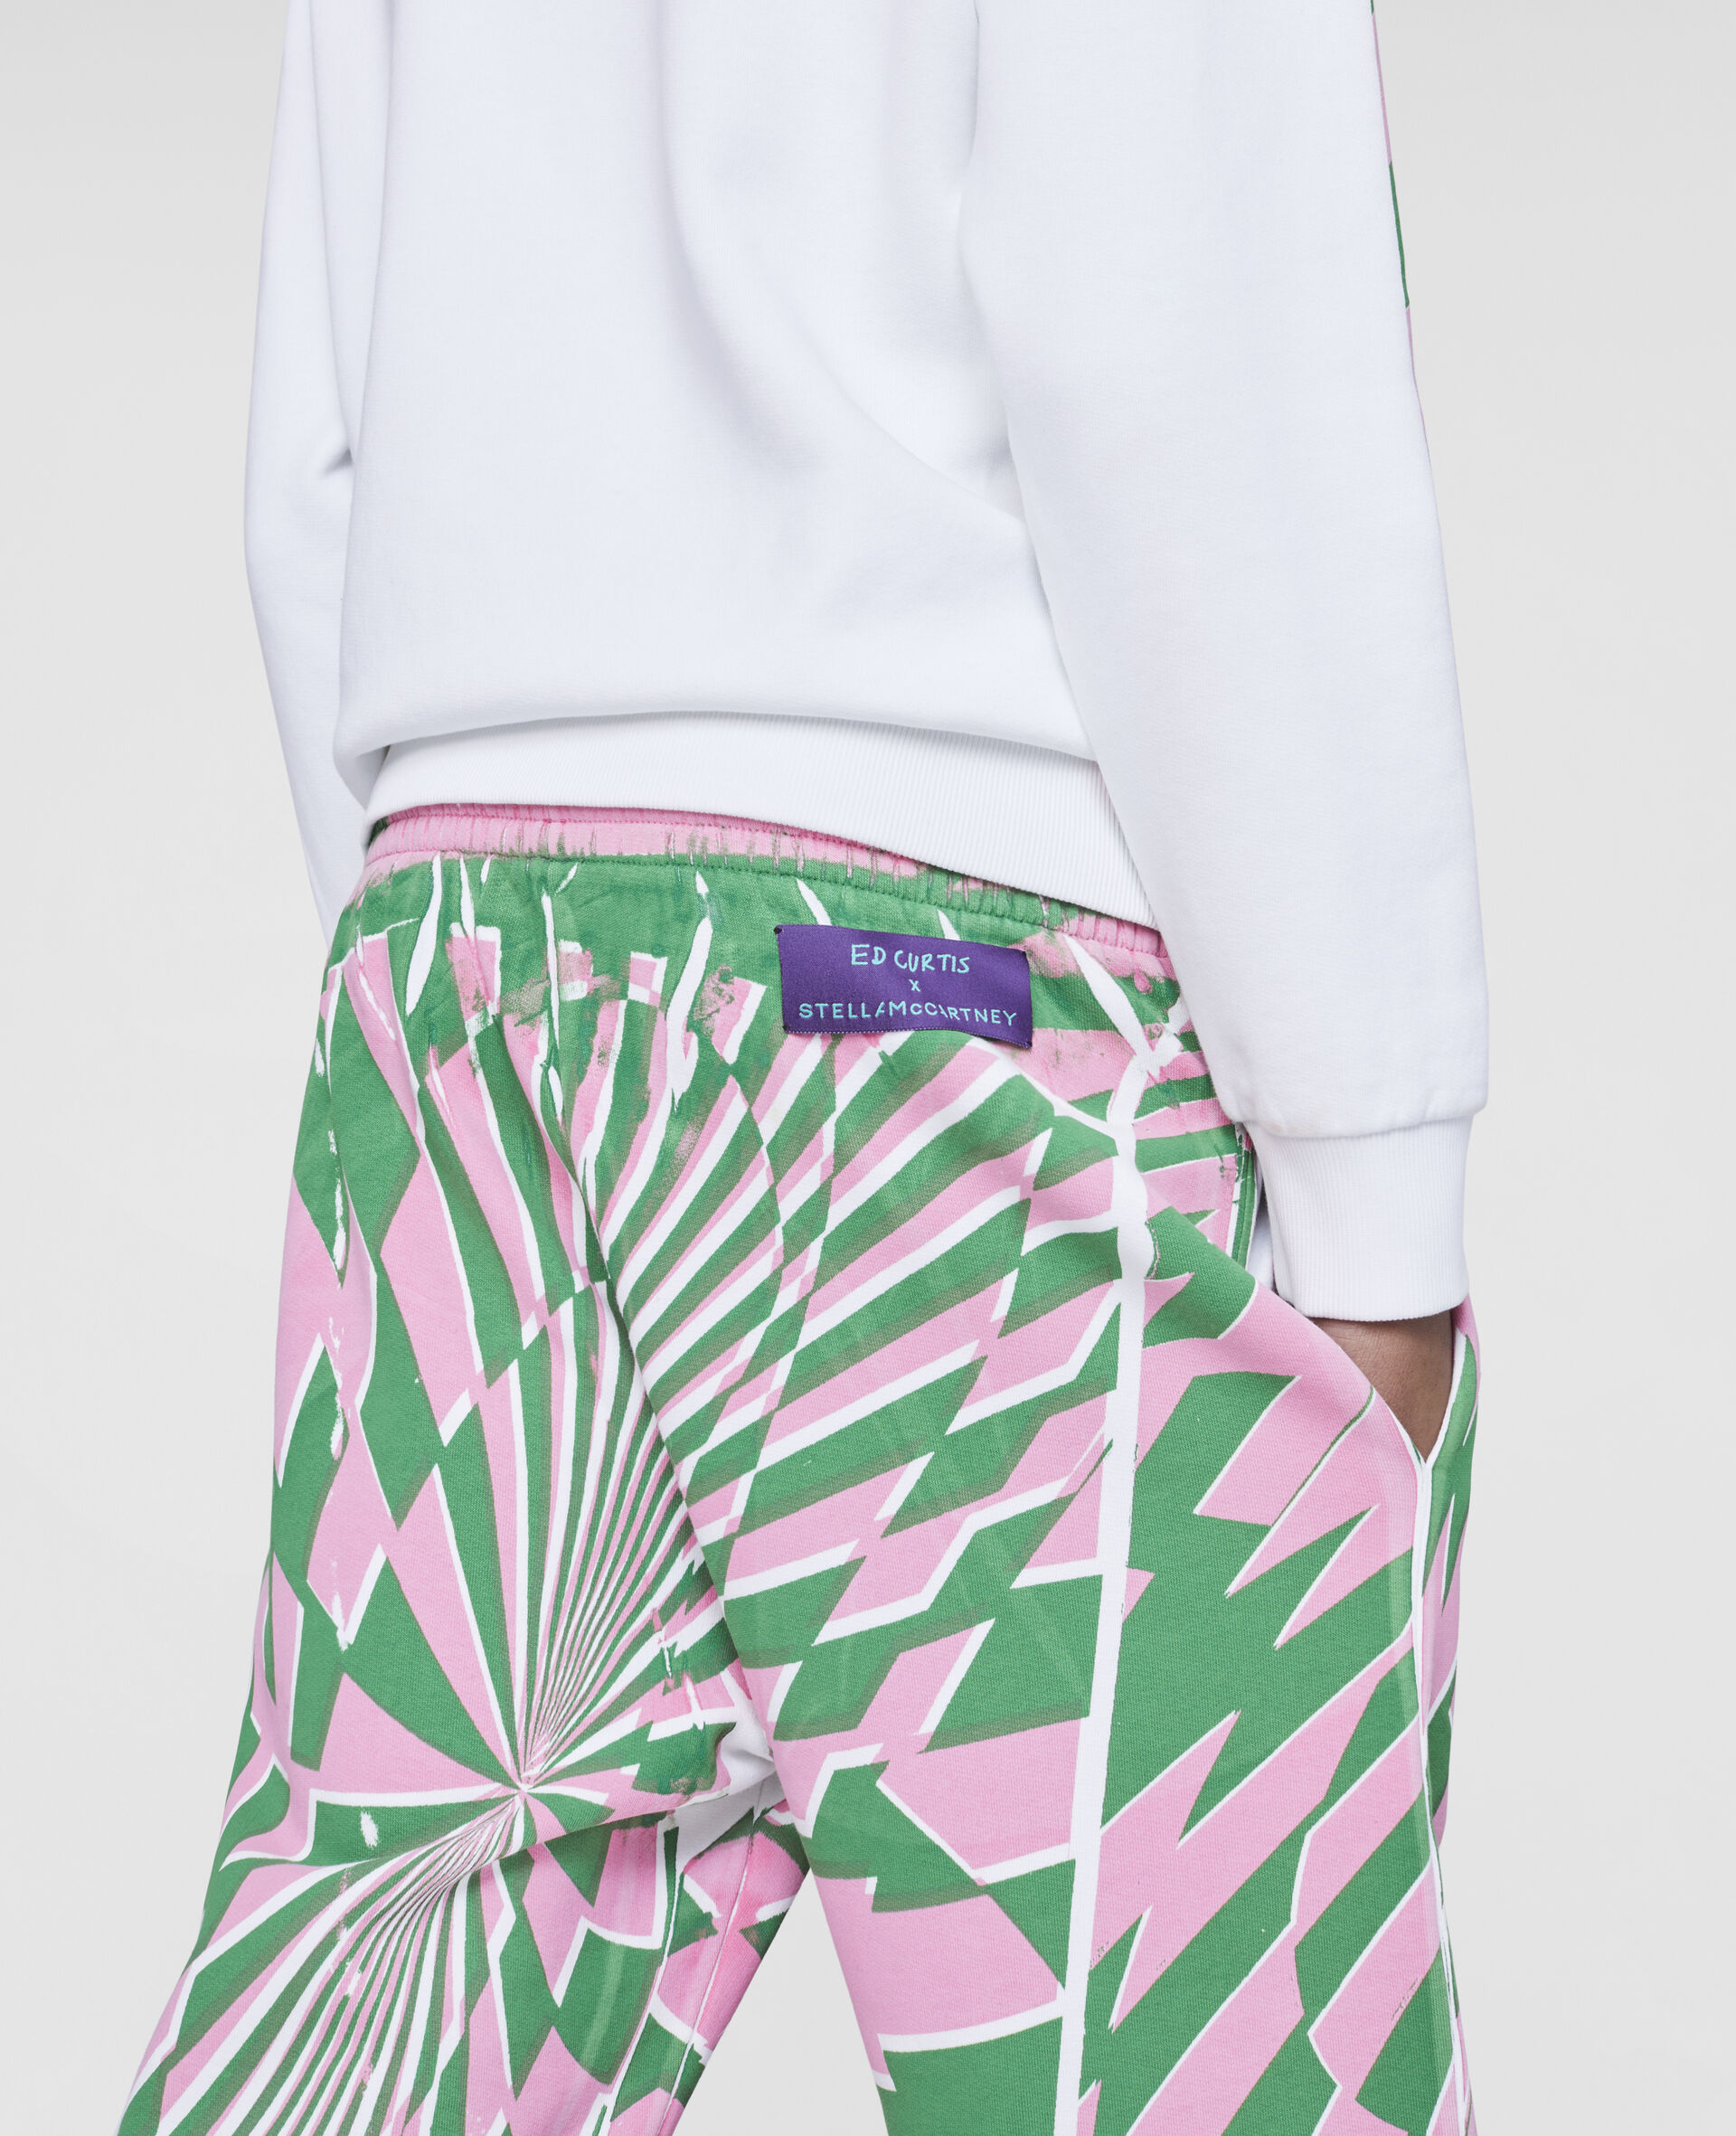 Ed Curtis Psychedelic Sweatpants-Multicolour-large image number 4